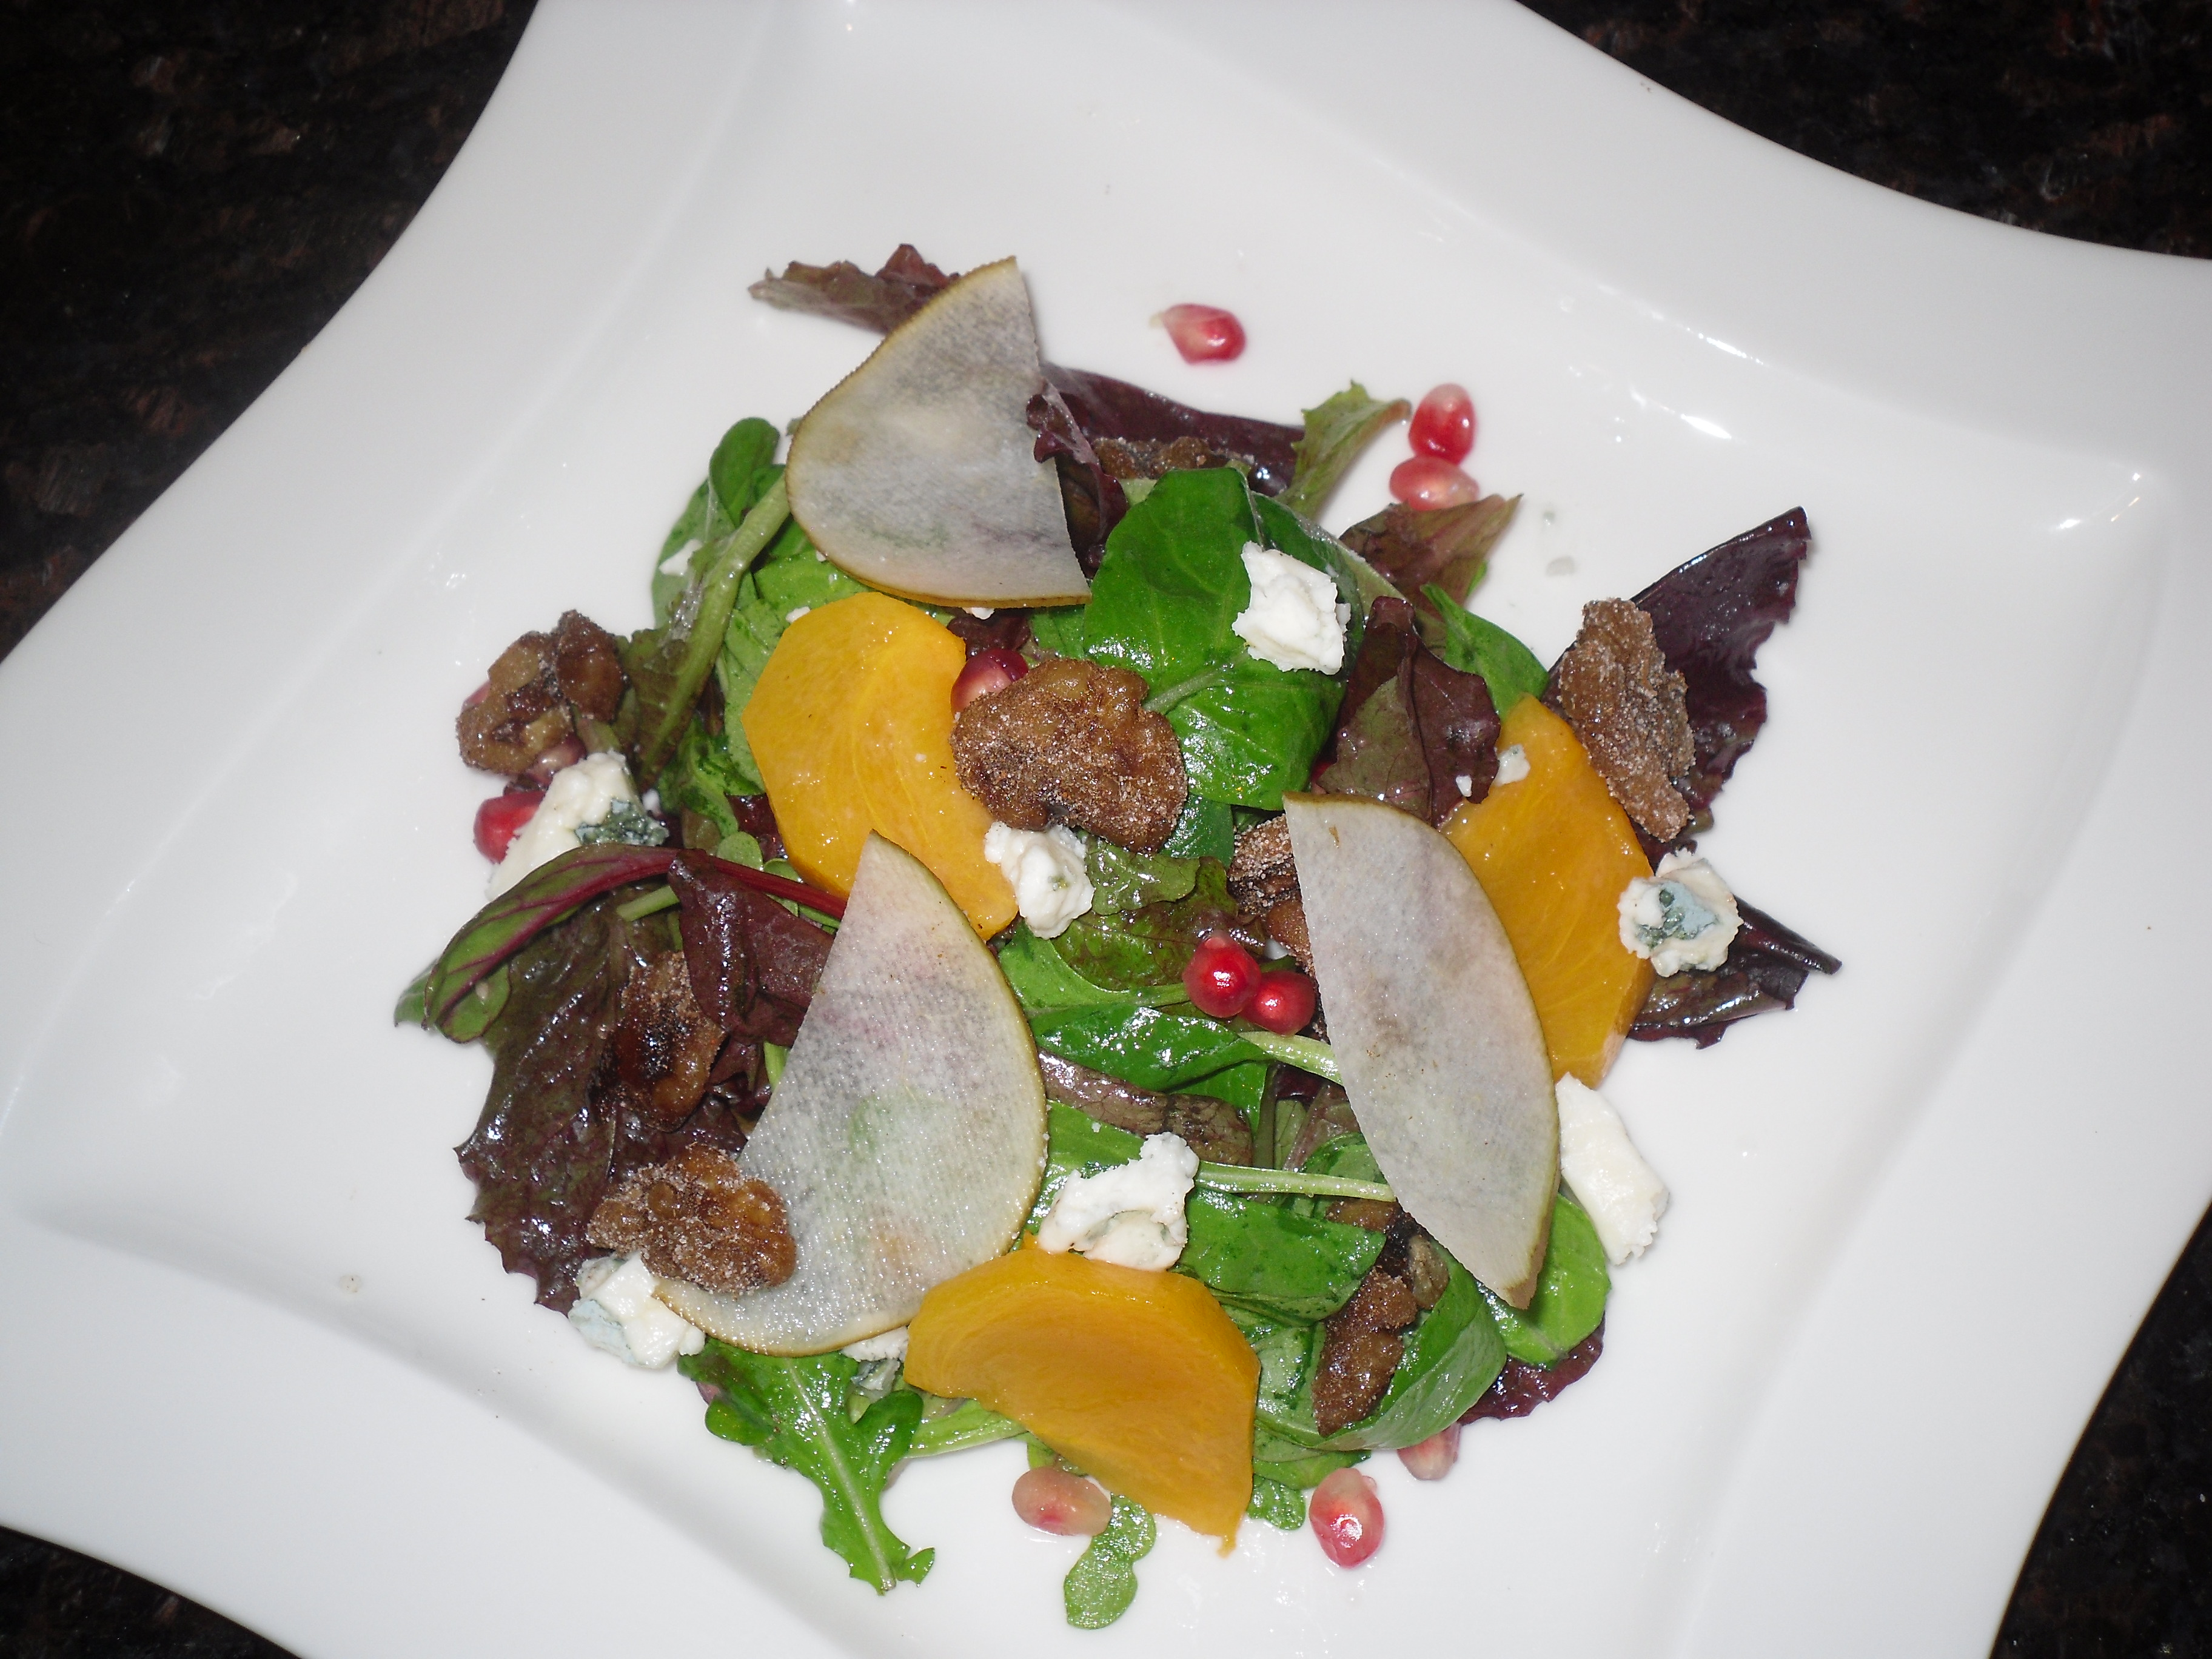 Persimmon, Asian Pear, Pomegranate Salad with Blue Cheese and Spiced ...